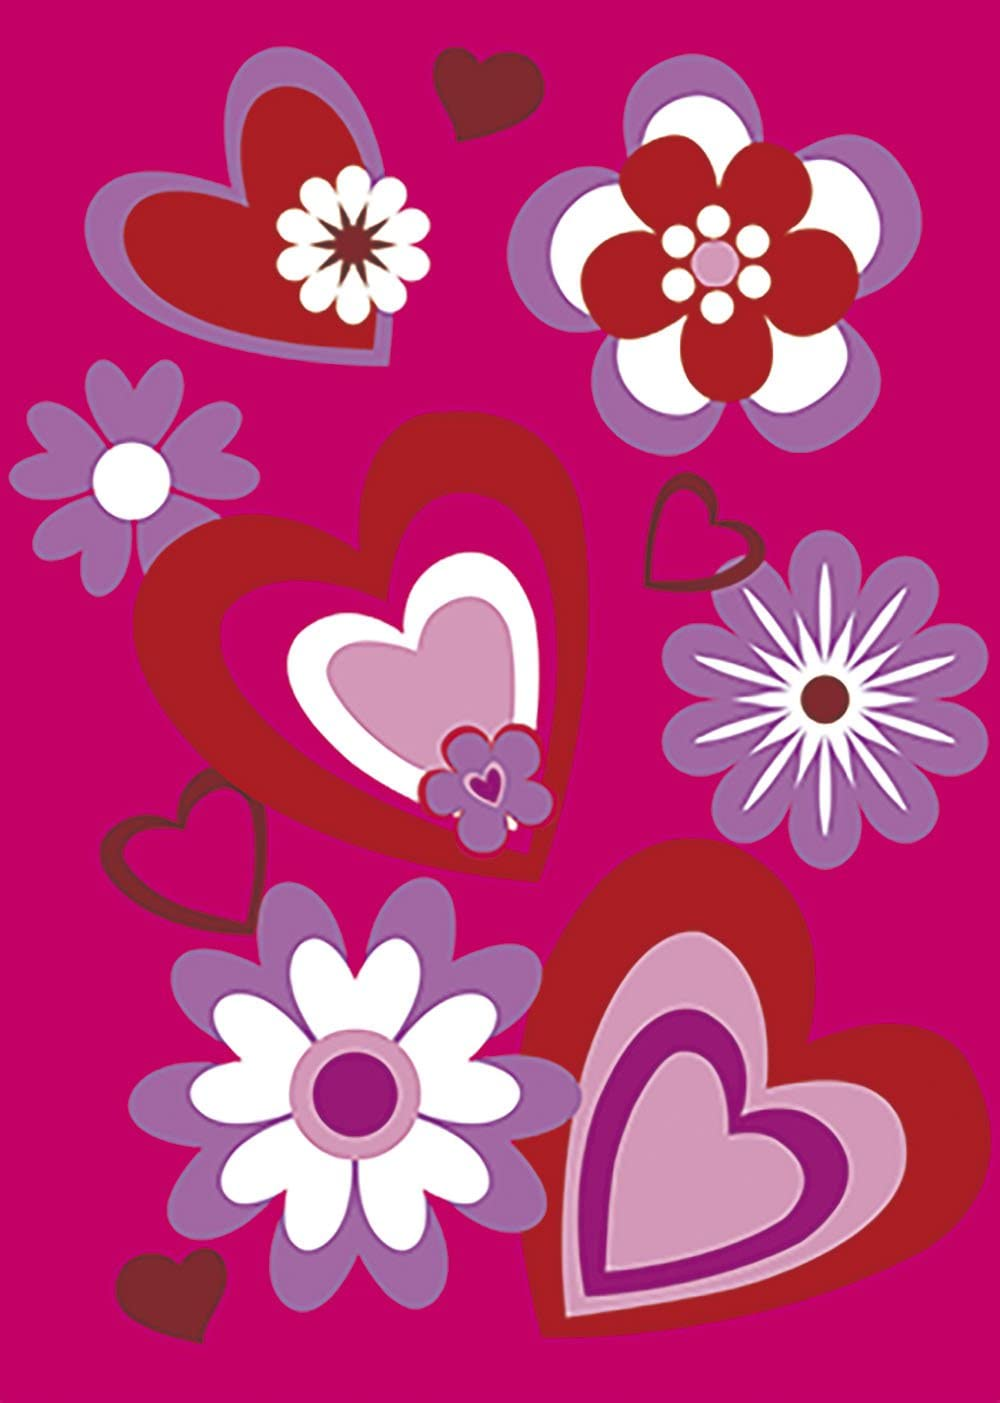 Sales of Dedication SALE items from new works Morigins Heart Flower Decorative Valentine Sided Red Day Double